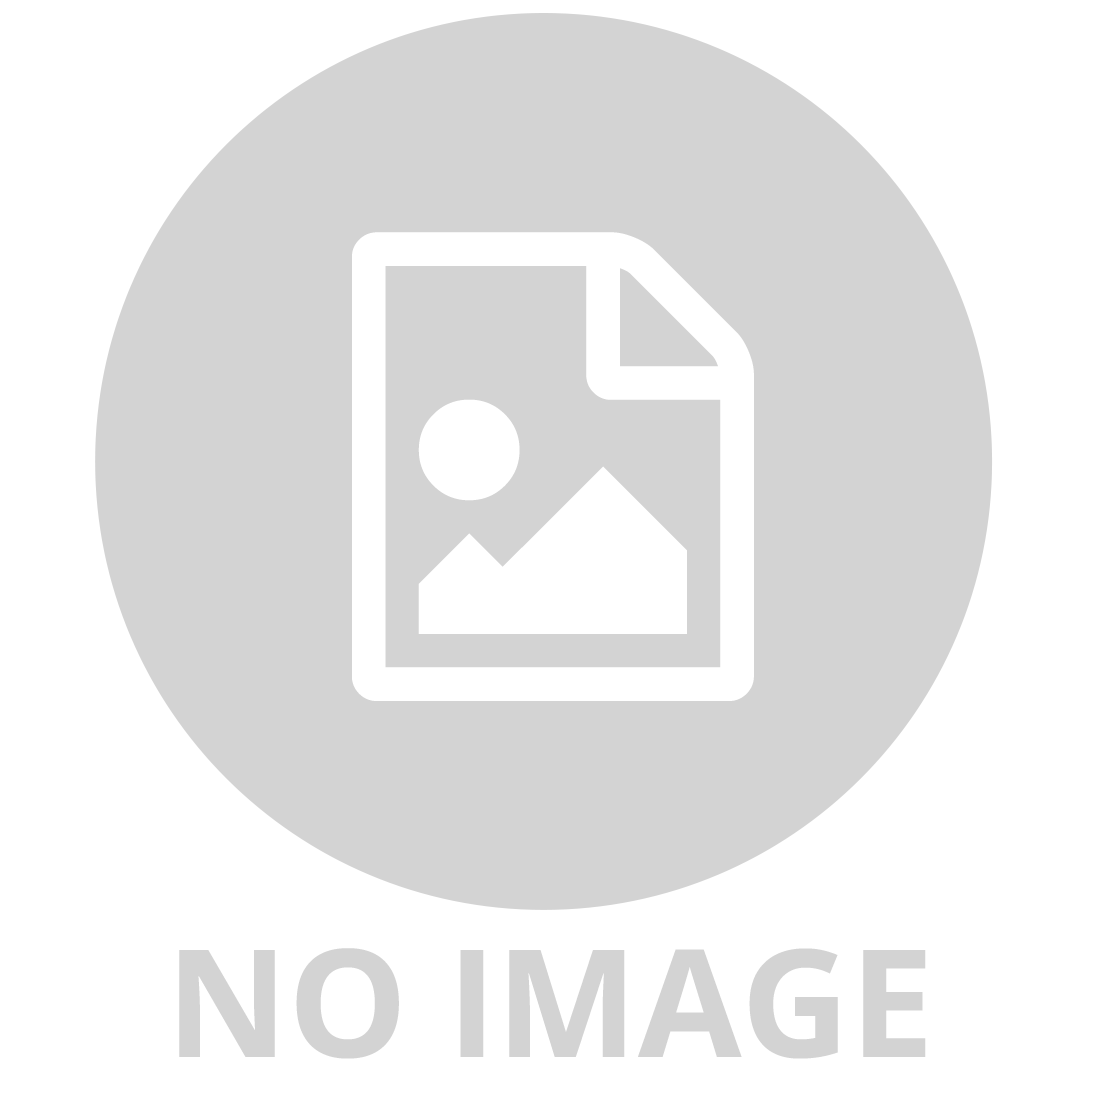 AIRFIX 1:72 HAWKER SIDDELEY AV-8A HARRIER